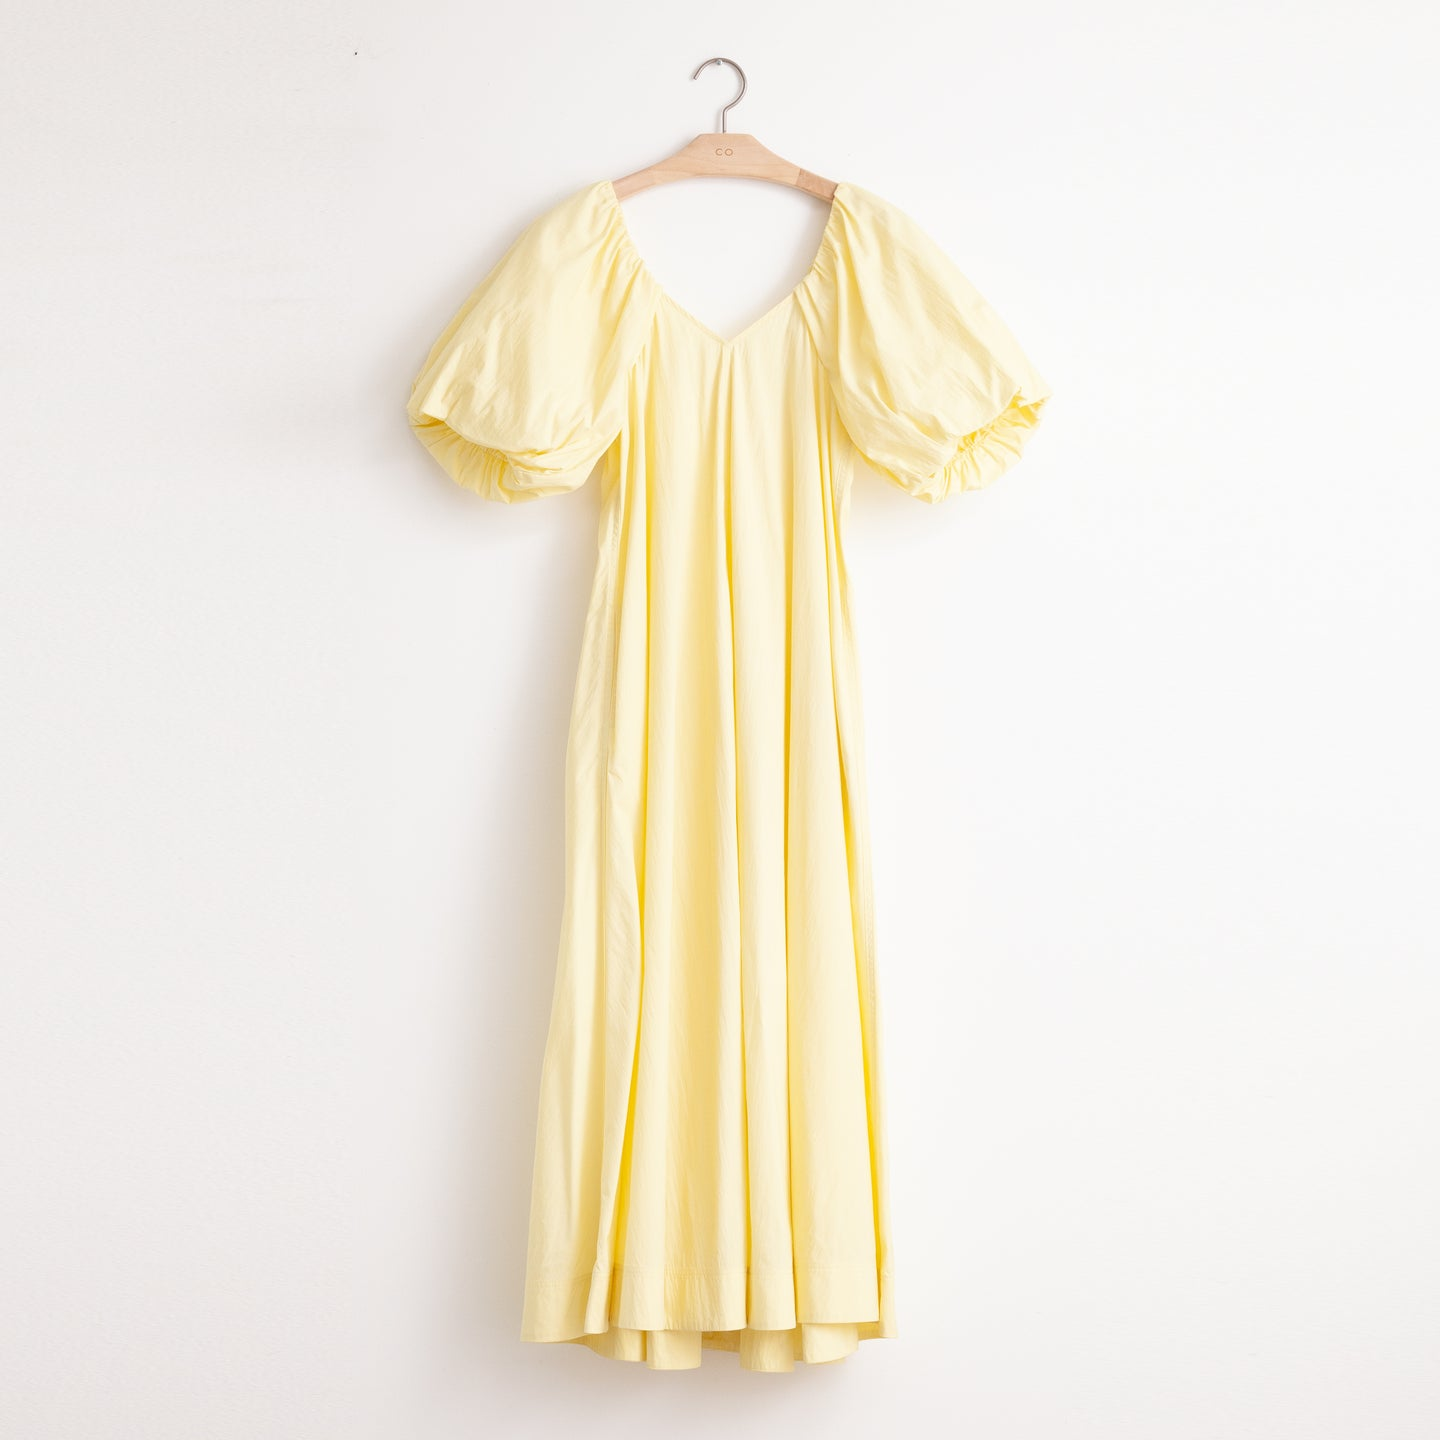 CO - Open neck a line dress with voluminous sleeve detail in yellow lightweight cotton nylon